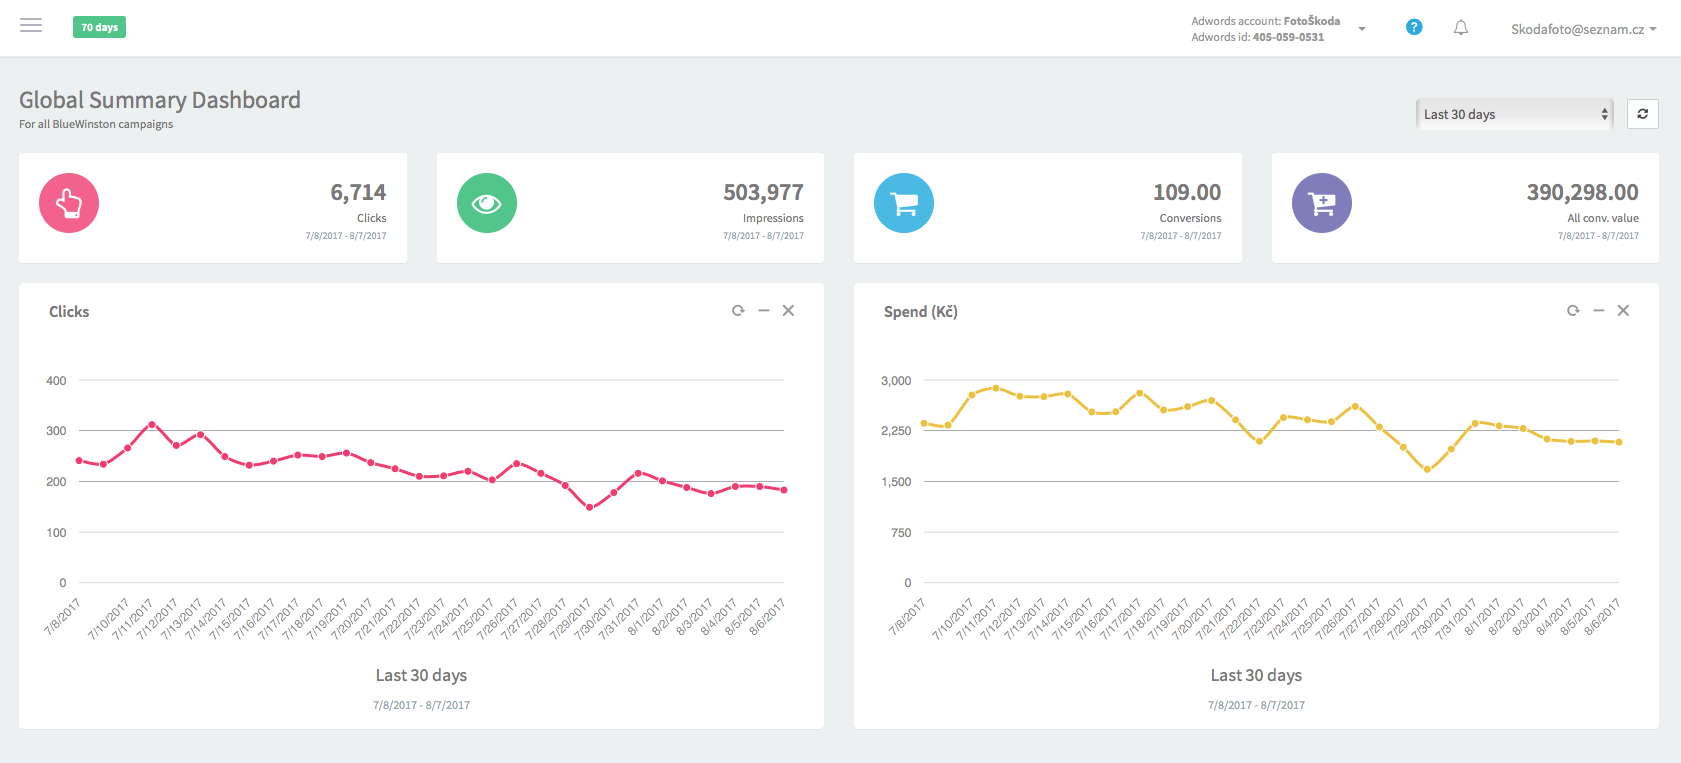 View real-time statistics from the main application dashboard